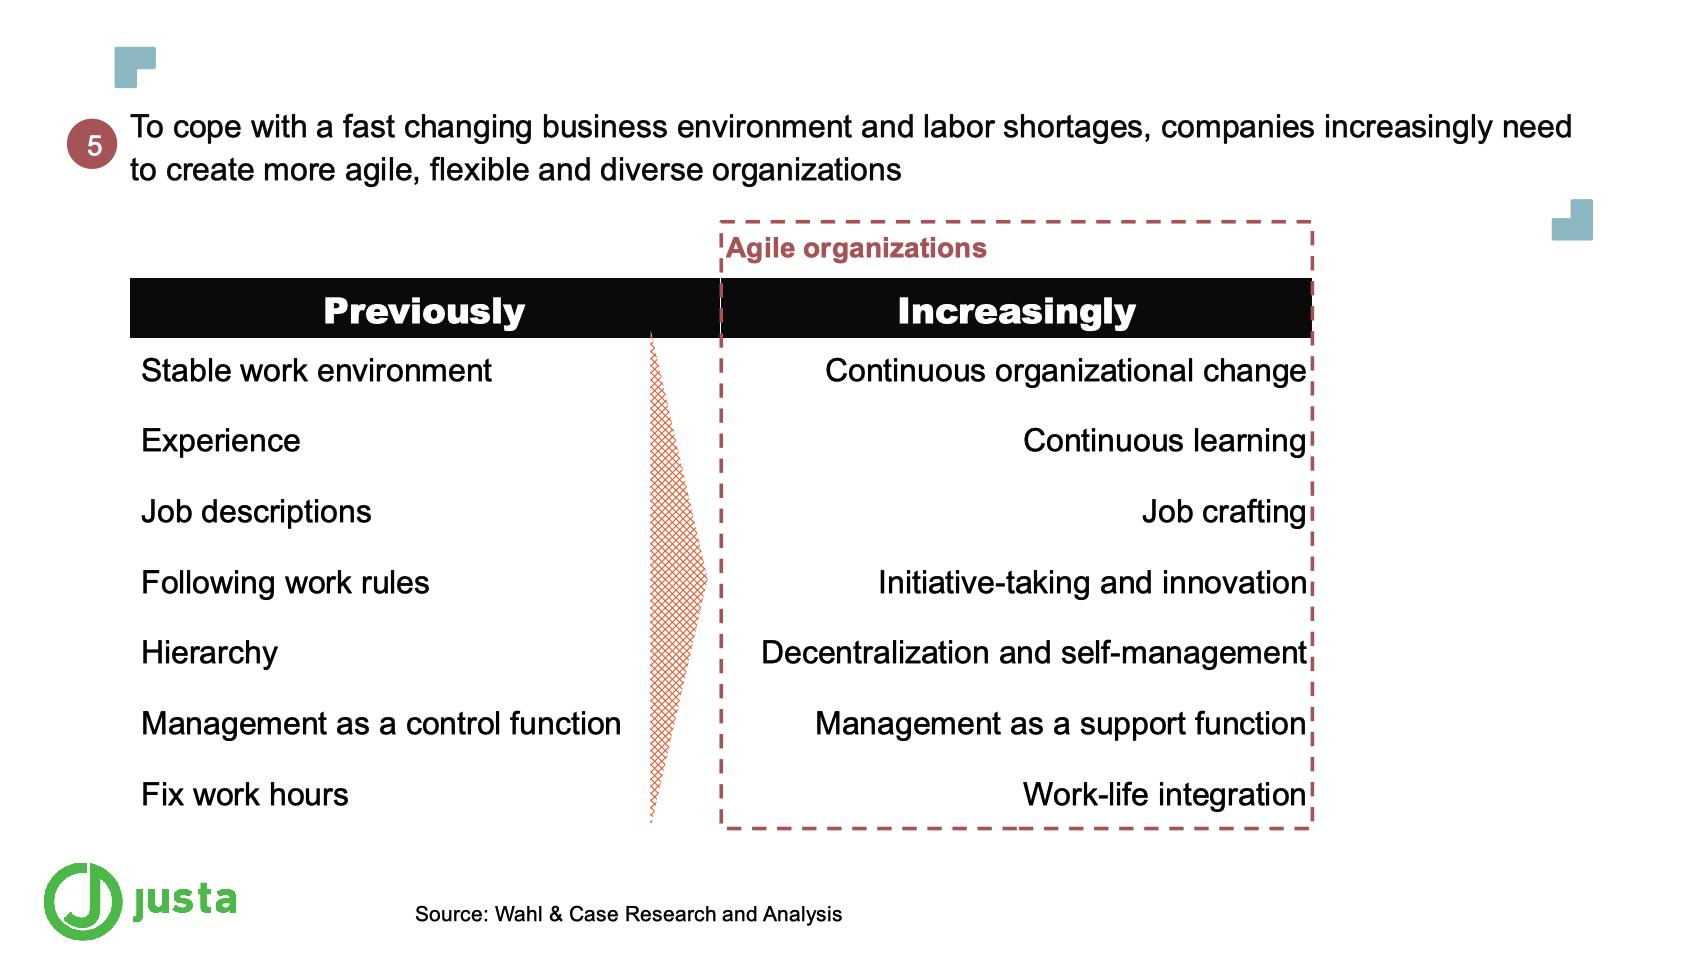 To cope with a fast changing business environment and labor shortages, companies increasingly need to create more agile, flexible and diverse organizations